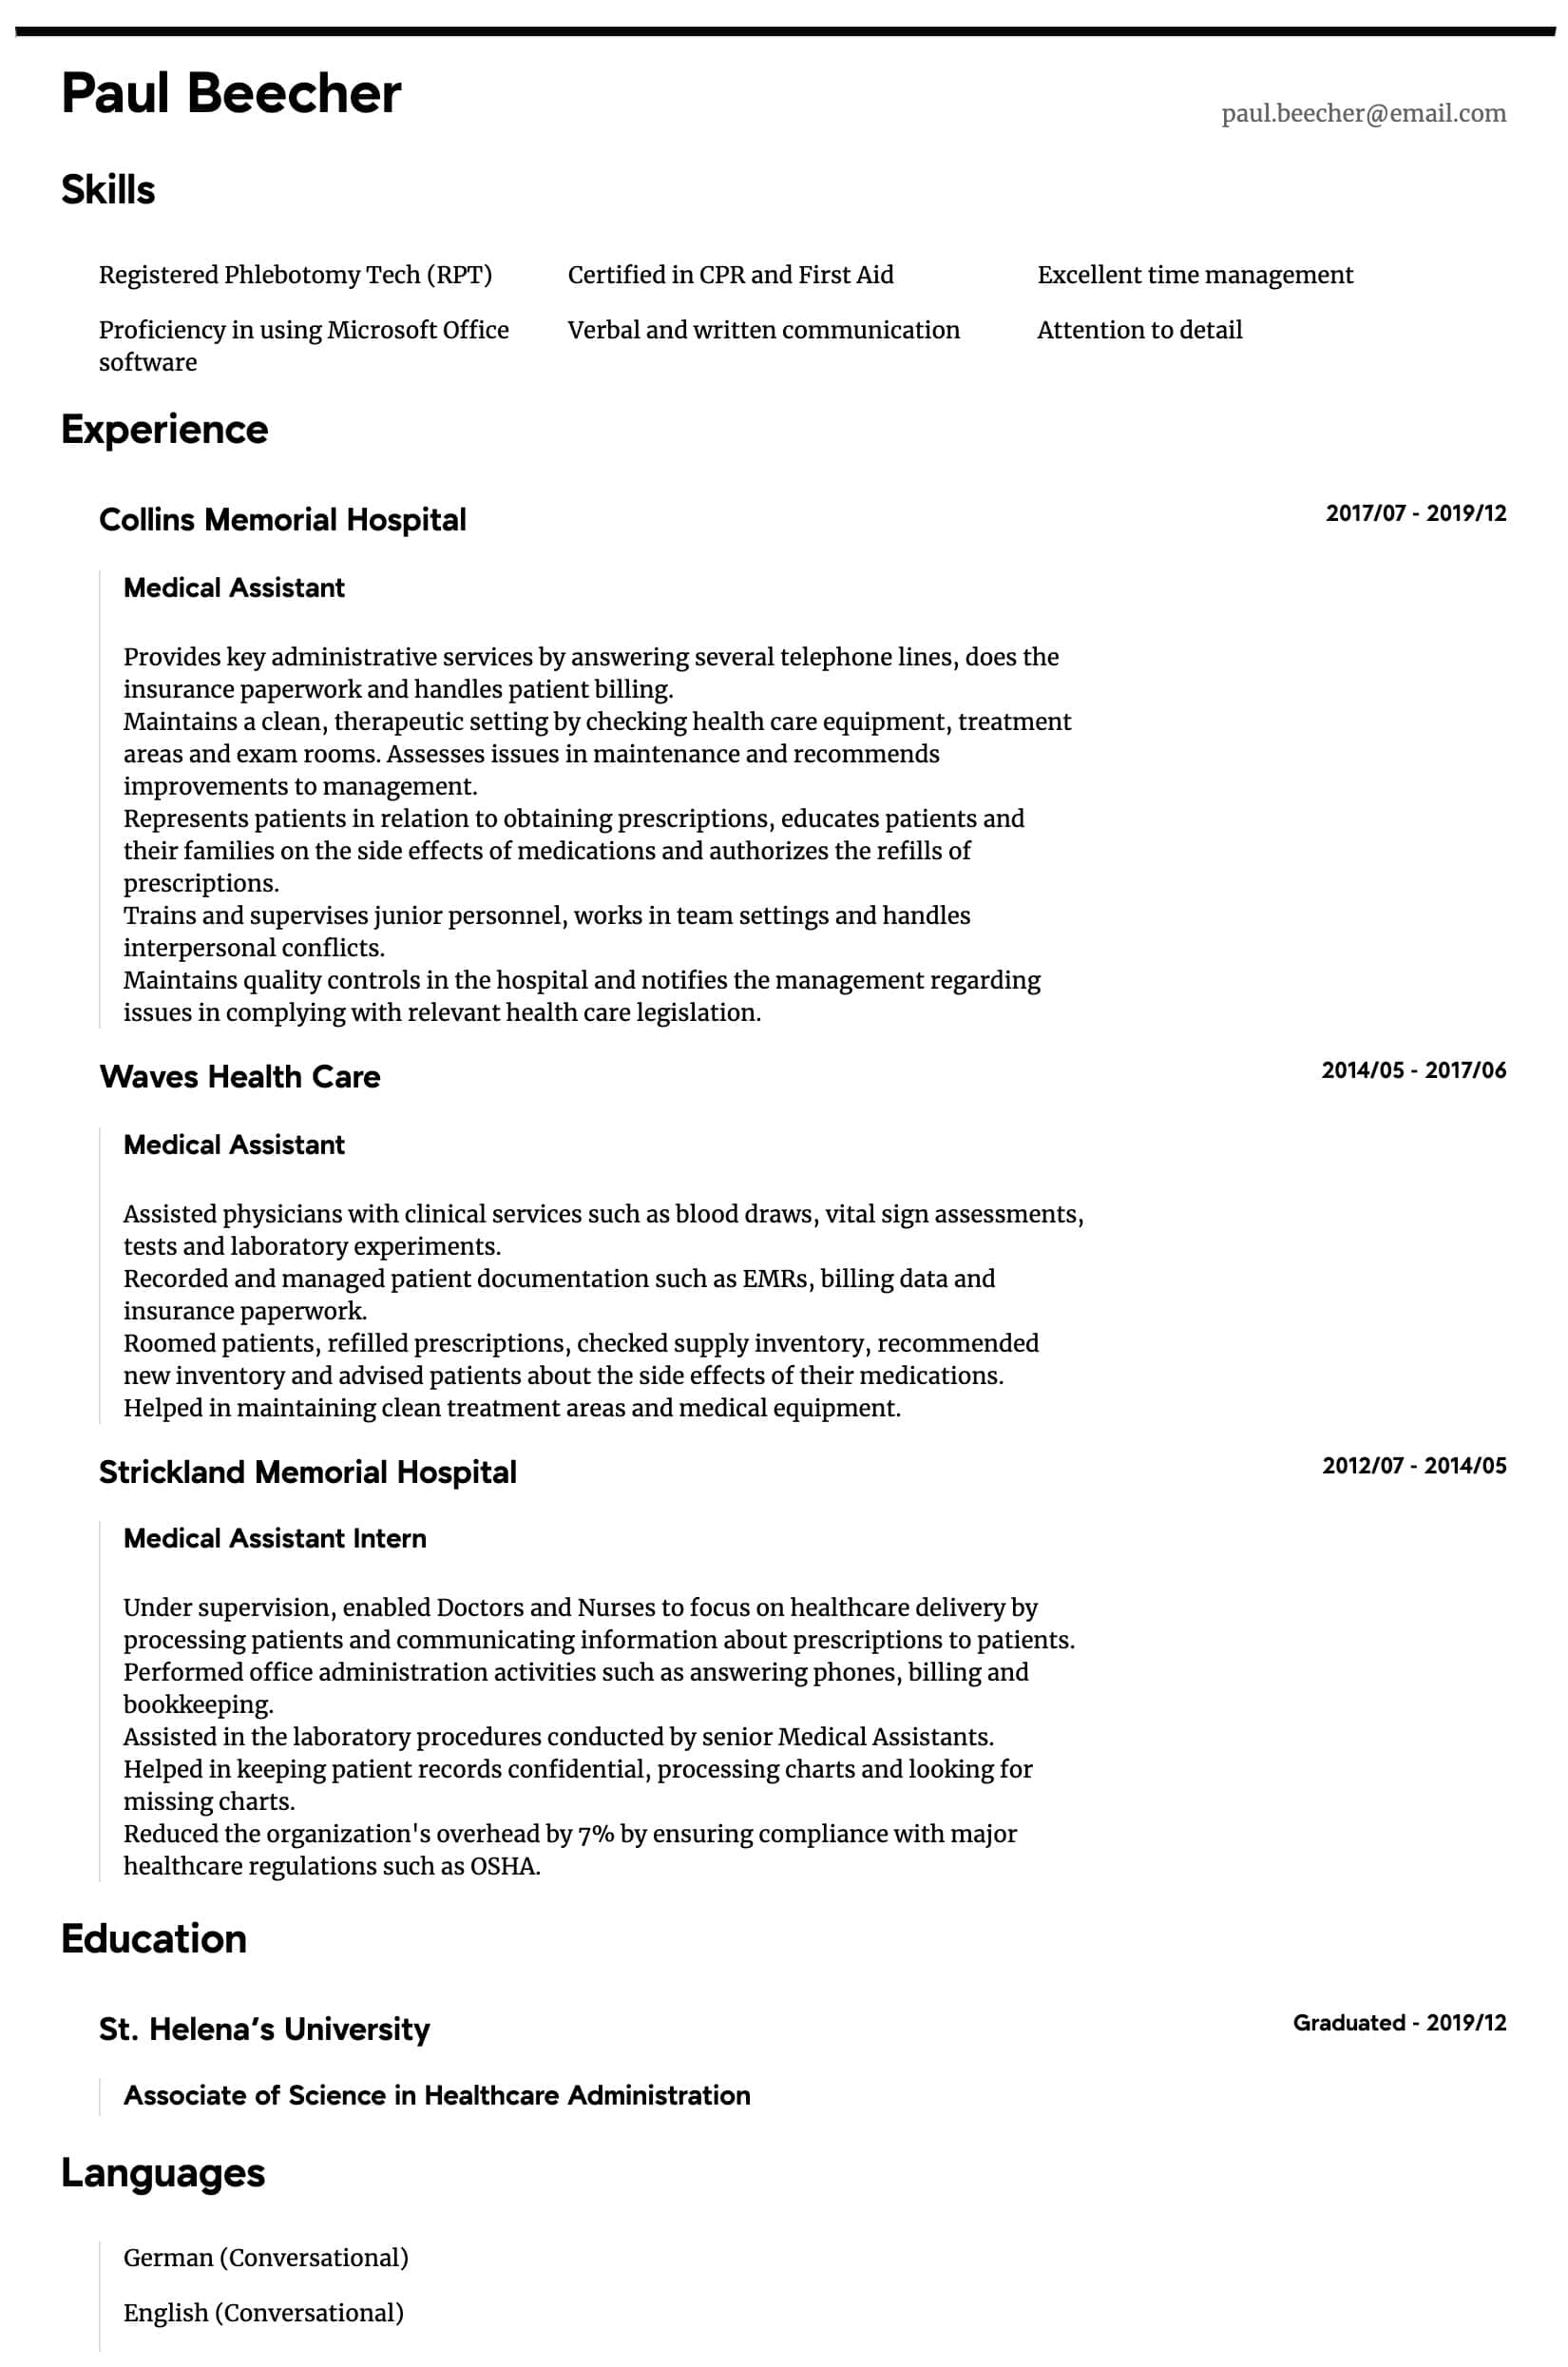 medical assistant resume samples all experience levels entry level objective intermediate Resume Entry Level Medical Assistant Resume Objective